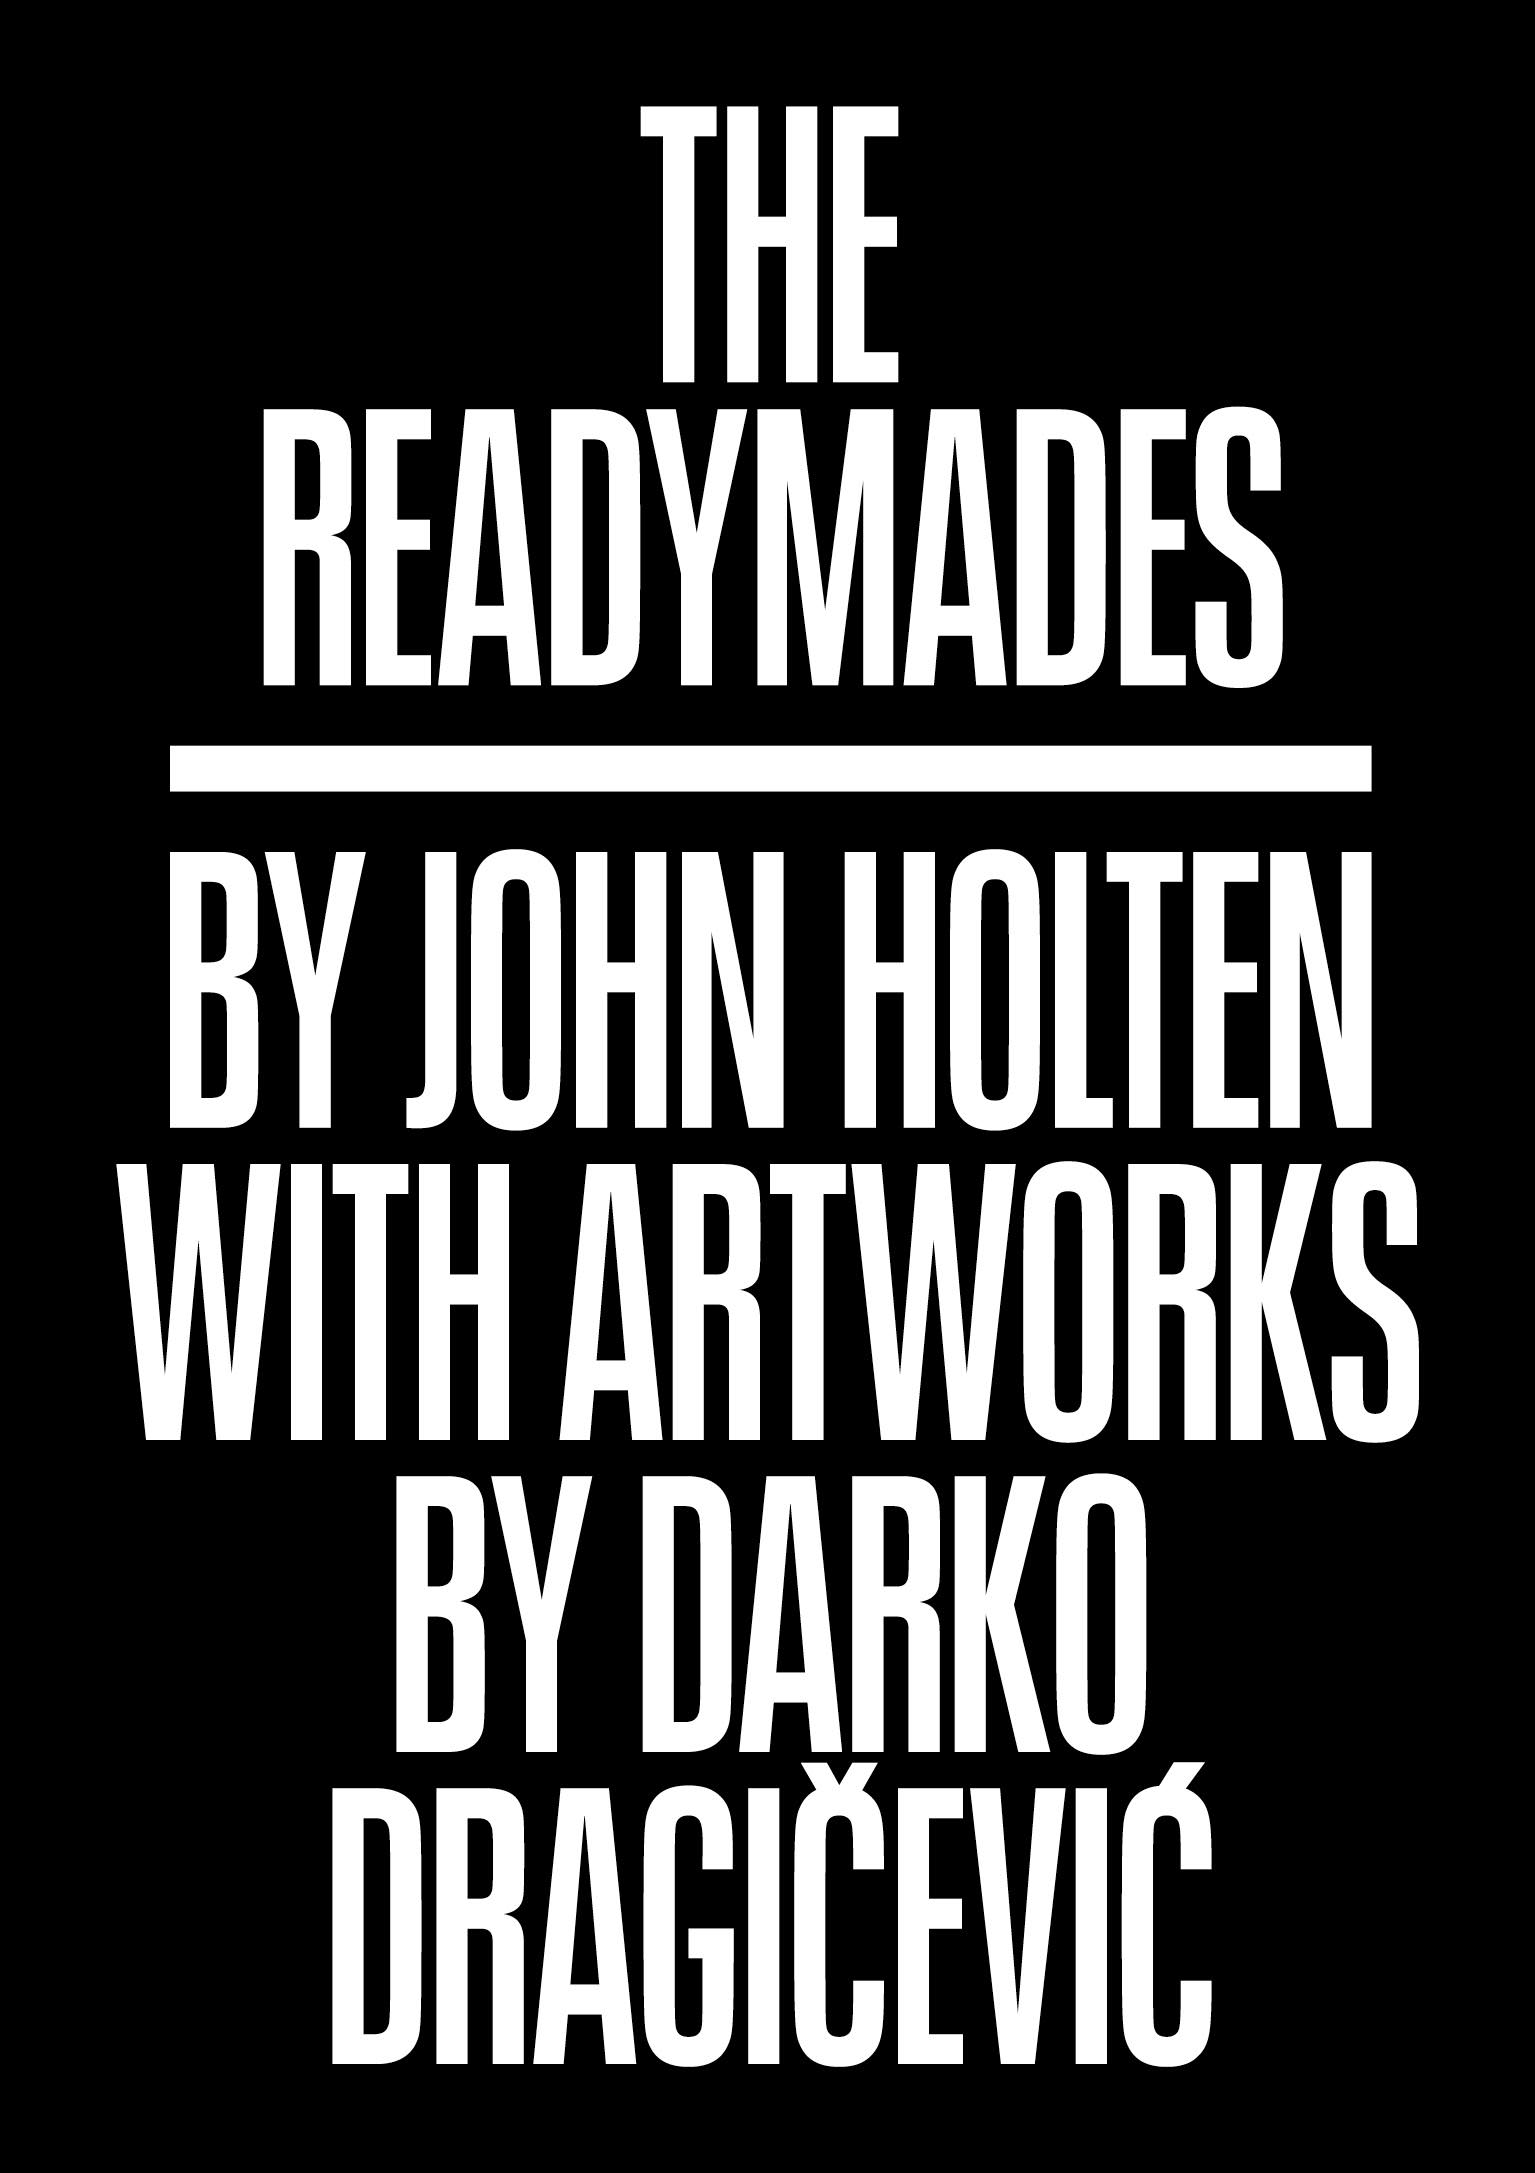 The Readymades - By John HoltenWith artwork by Darko DragičevićBook design by FUK Laboratories Berlin127 x 184 mm 340 pages, 32 b&w ill., softcover dustjacket ISBN: 978-3-943196-00-9€15